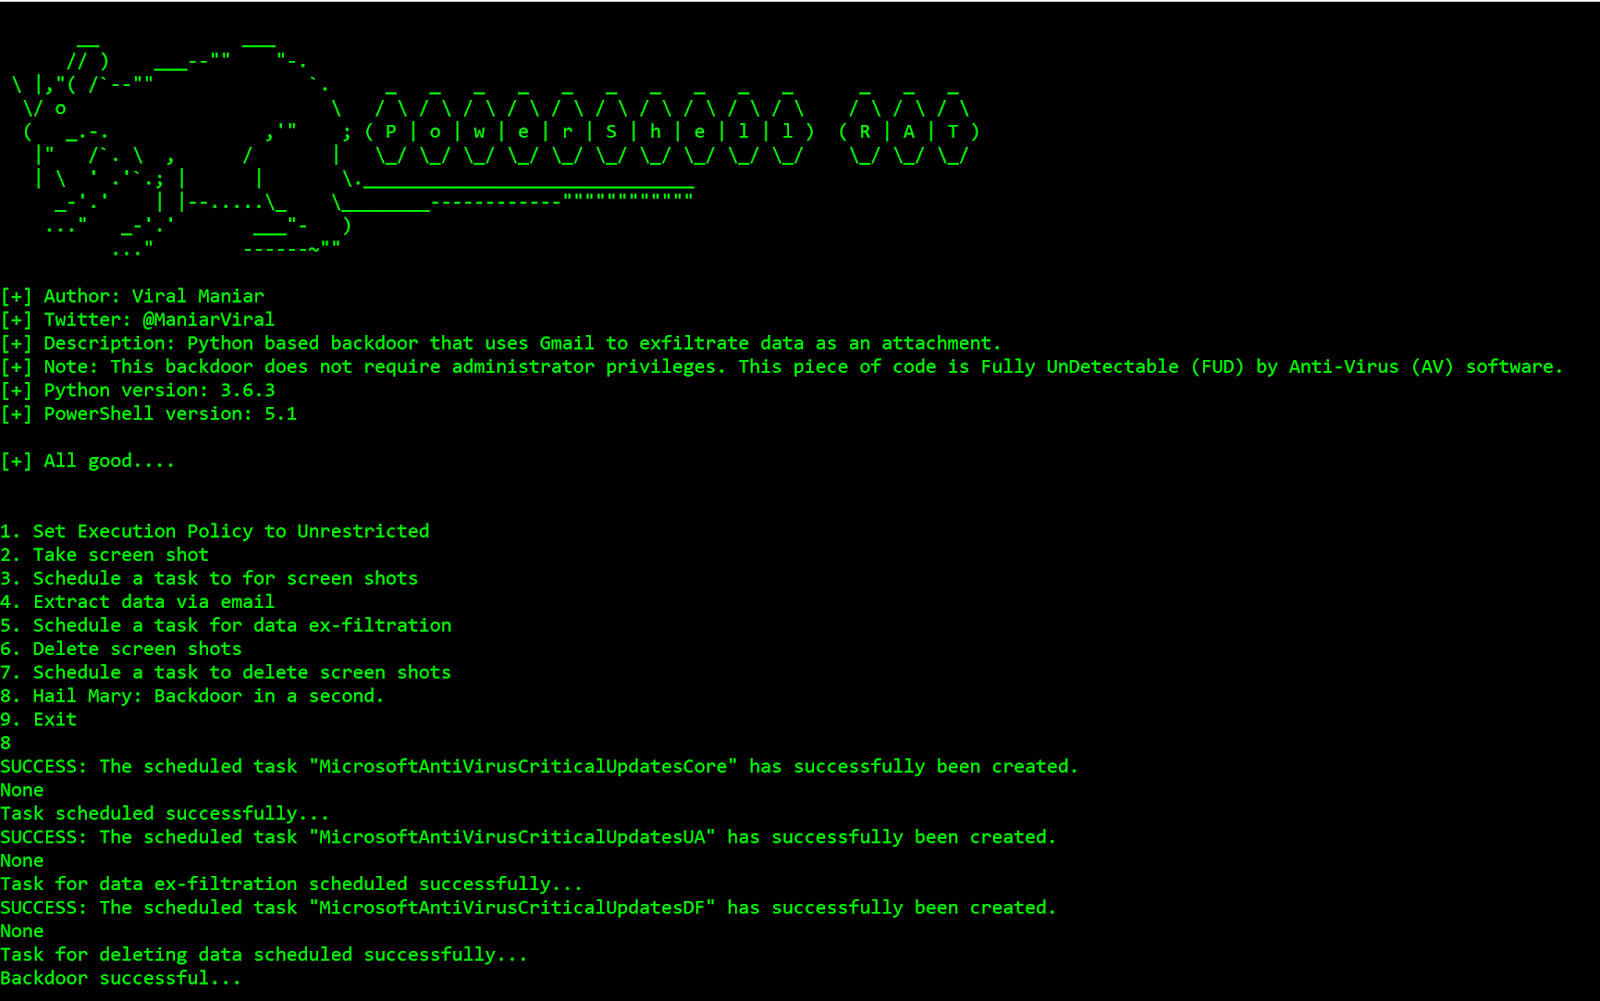 Powershell-RAT - Python Based Backdoor That Uses Gmail To Exfiltrate